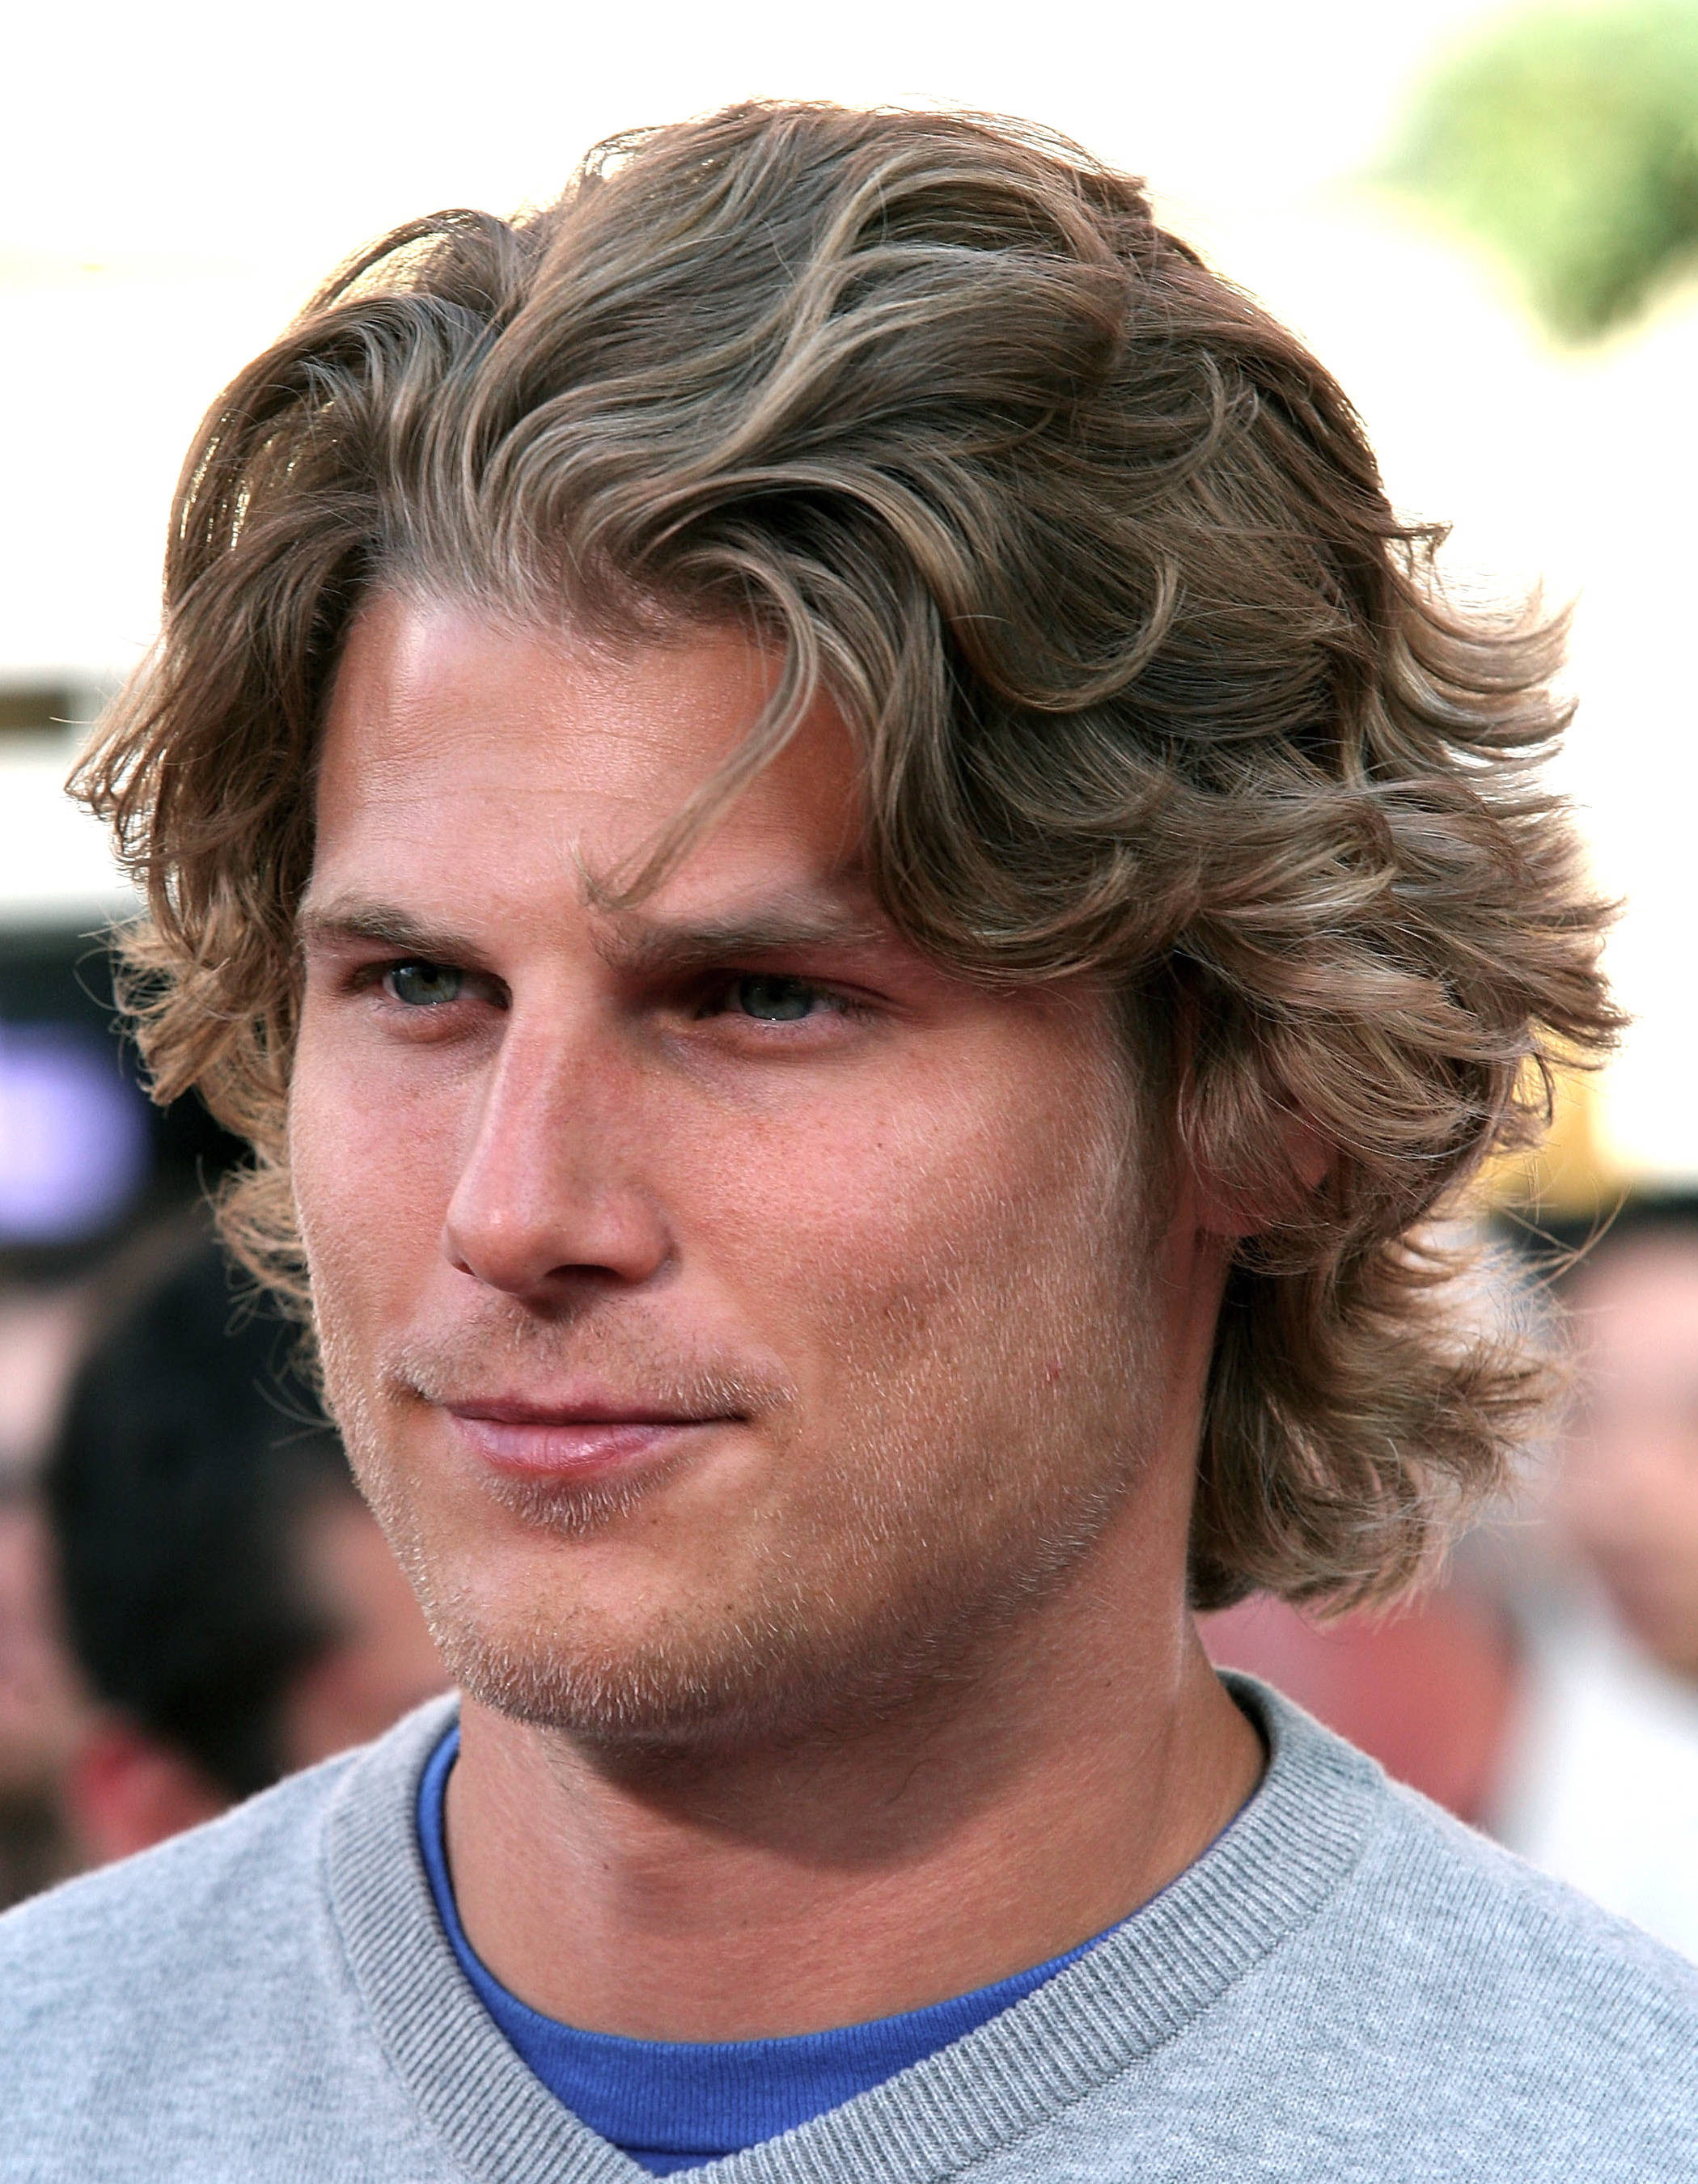 Best ideas about Men Long Wavy Hairstyles . Save or Pin Men's Long Hairstyles Now.